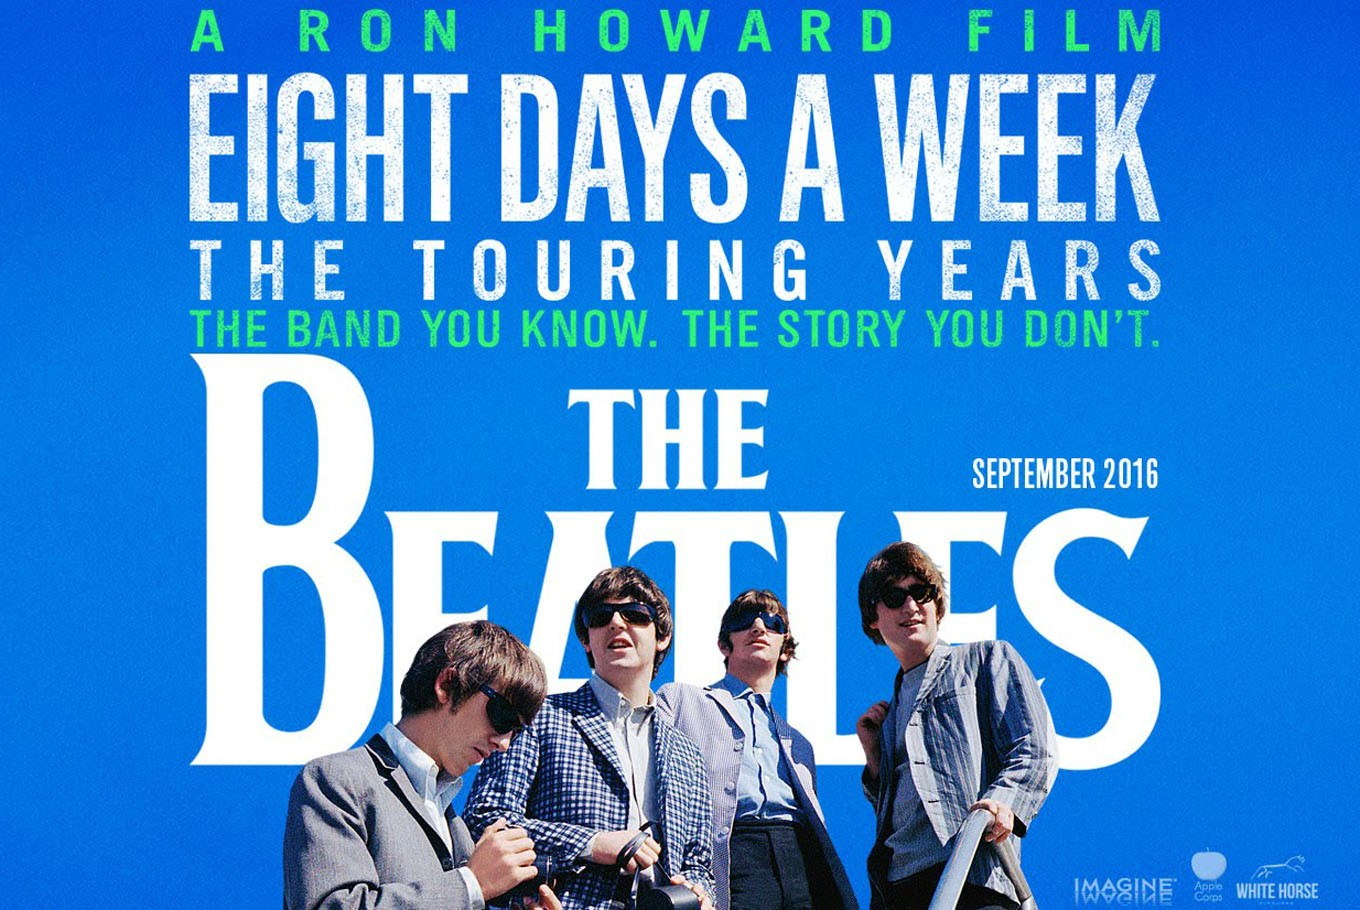 Review: An amusing 'Eight Days a Week' with the Beatles